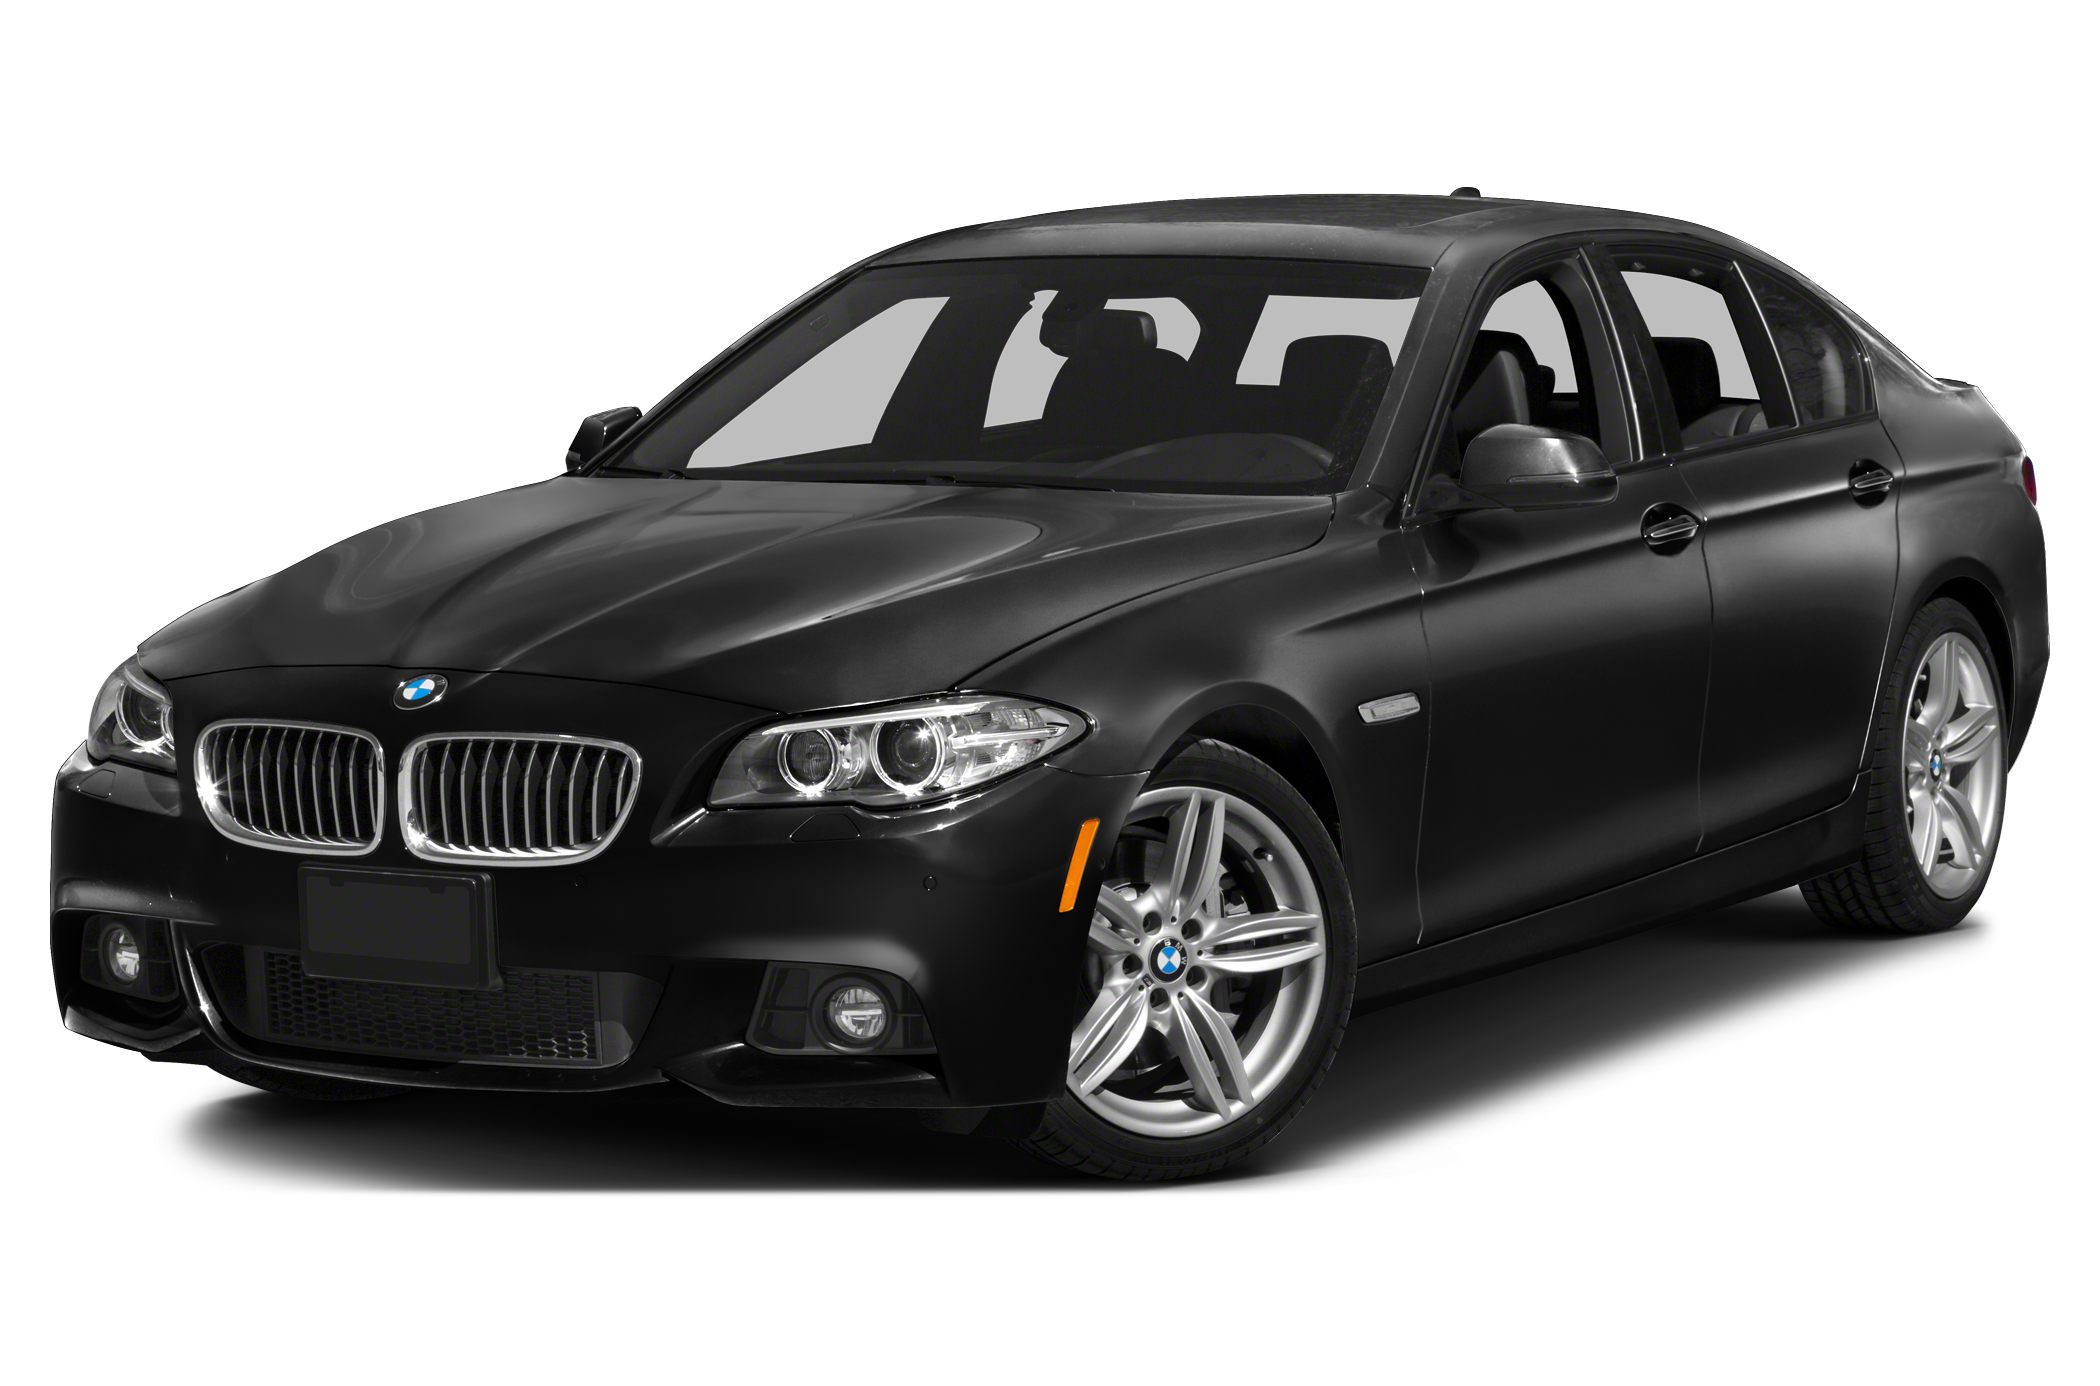 2015 BMW 535d XDrive Sedan for sale in Portland for $69,150 with 17 miles